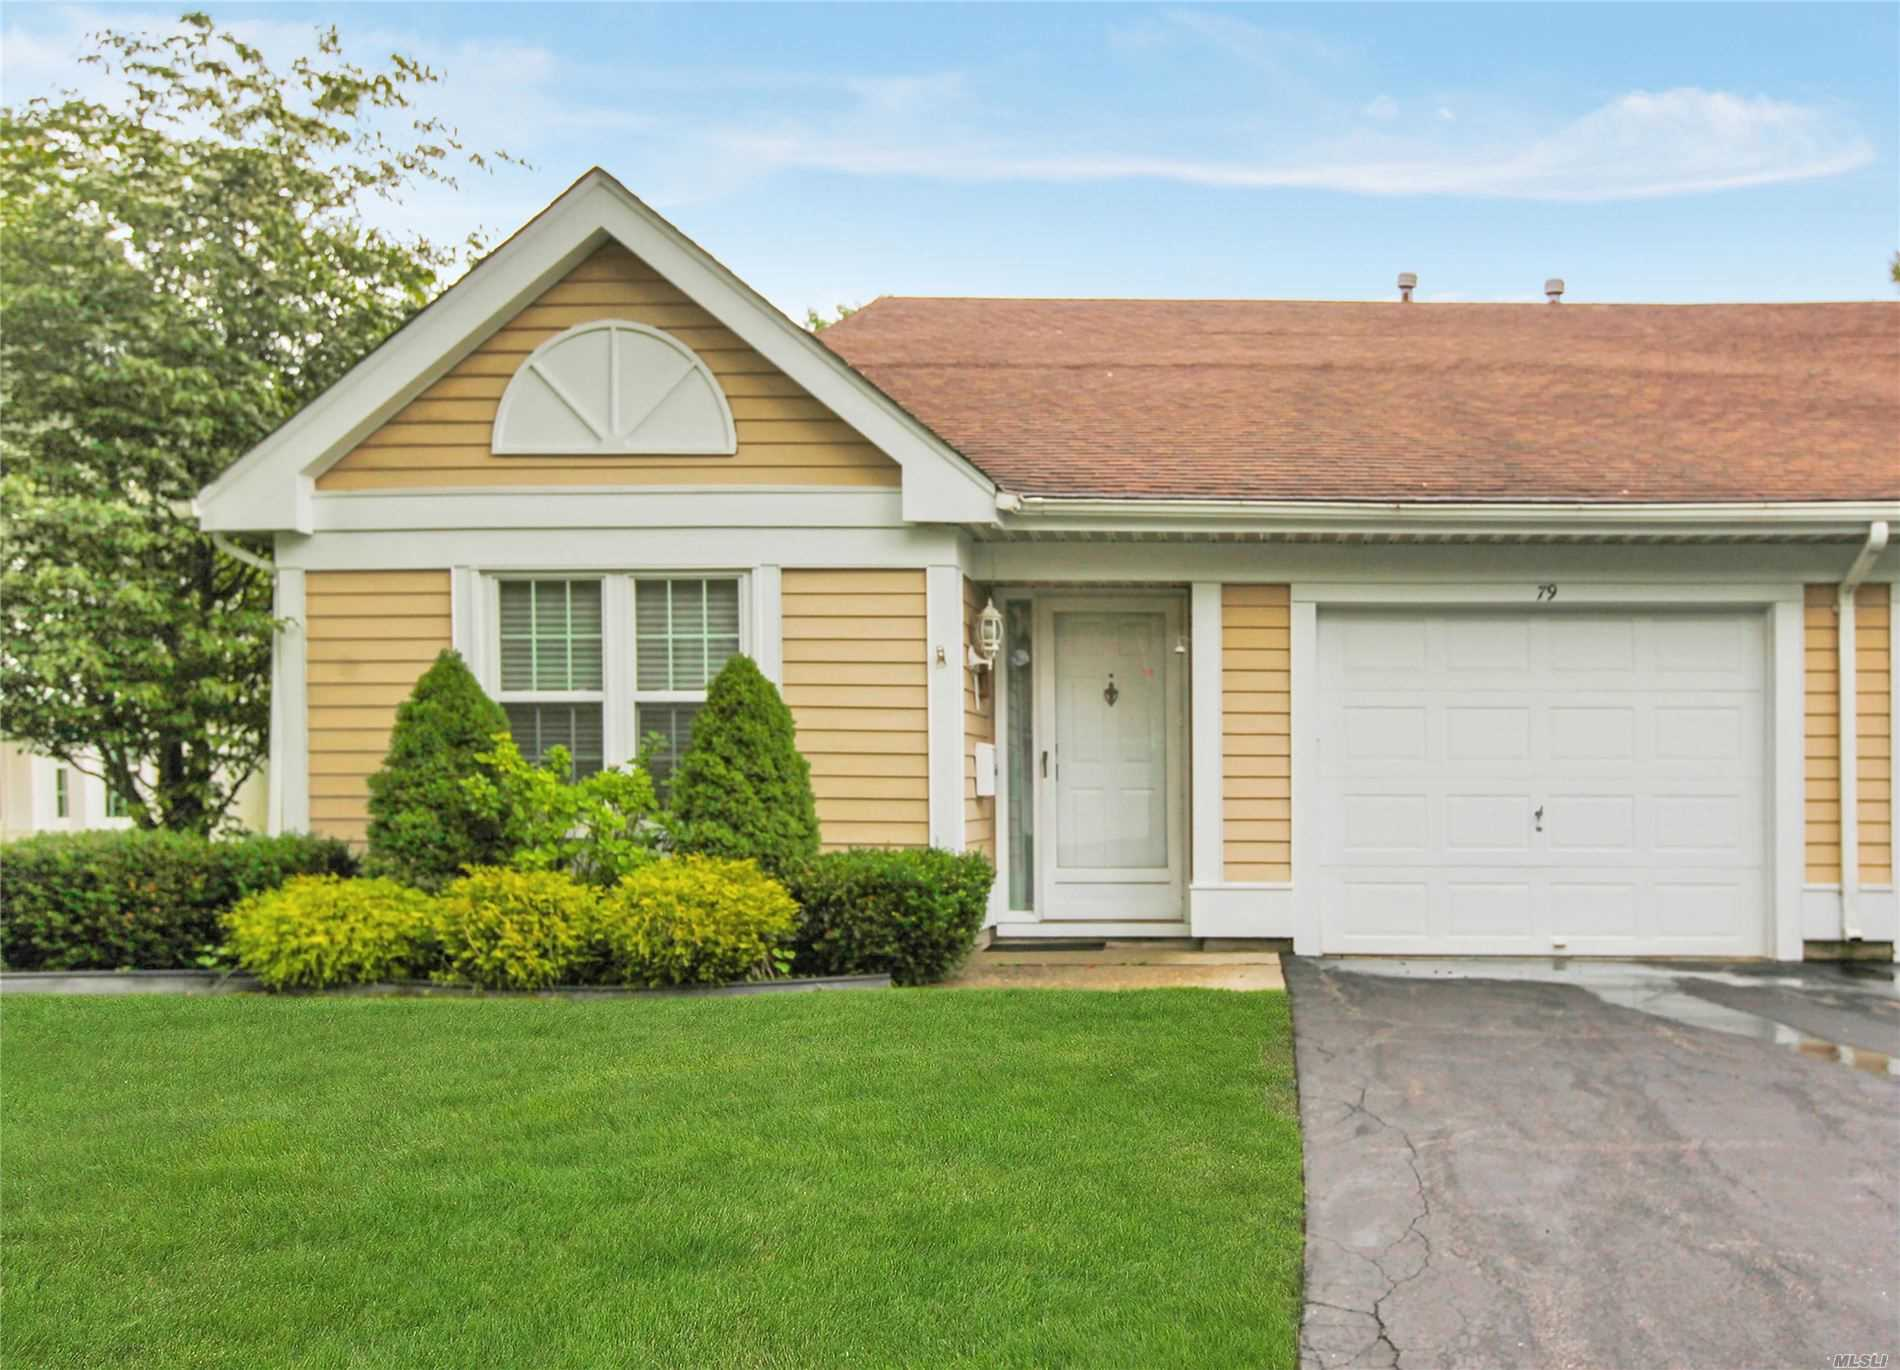 79 Glen Dr, 55 - Ridge, New York